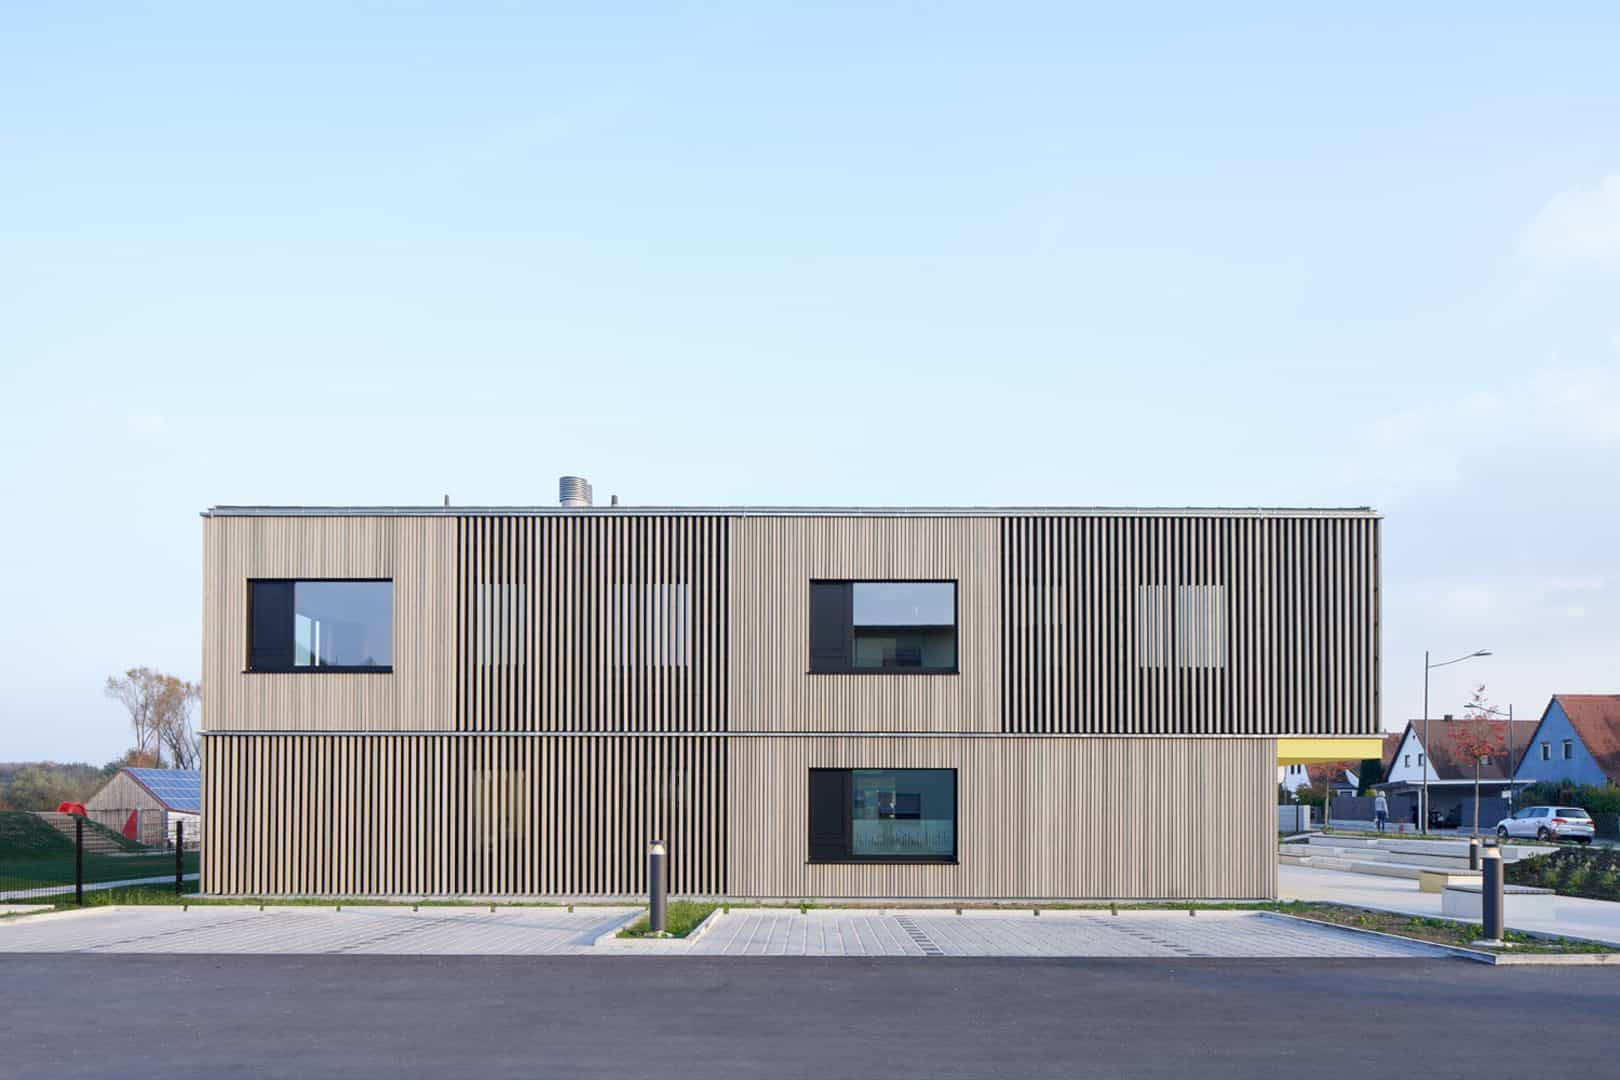 Kindergarten St Laurentius By Goldbrunner Architektur 2